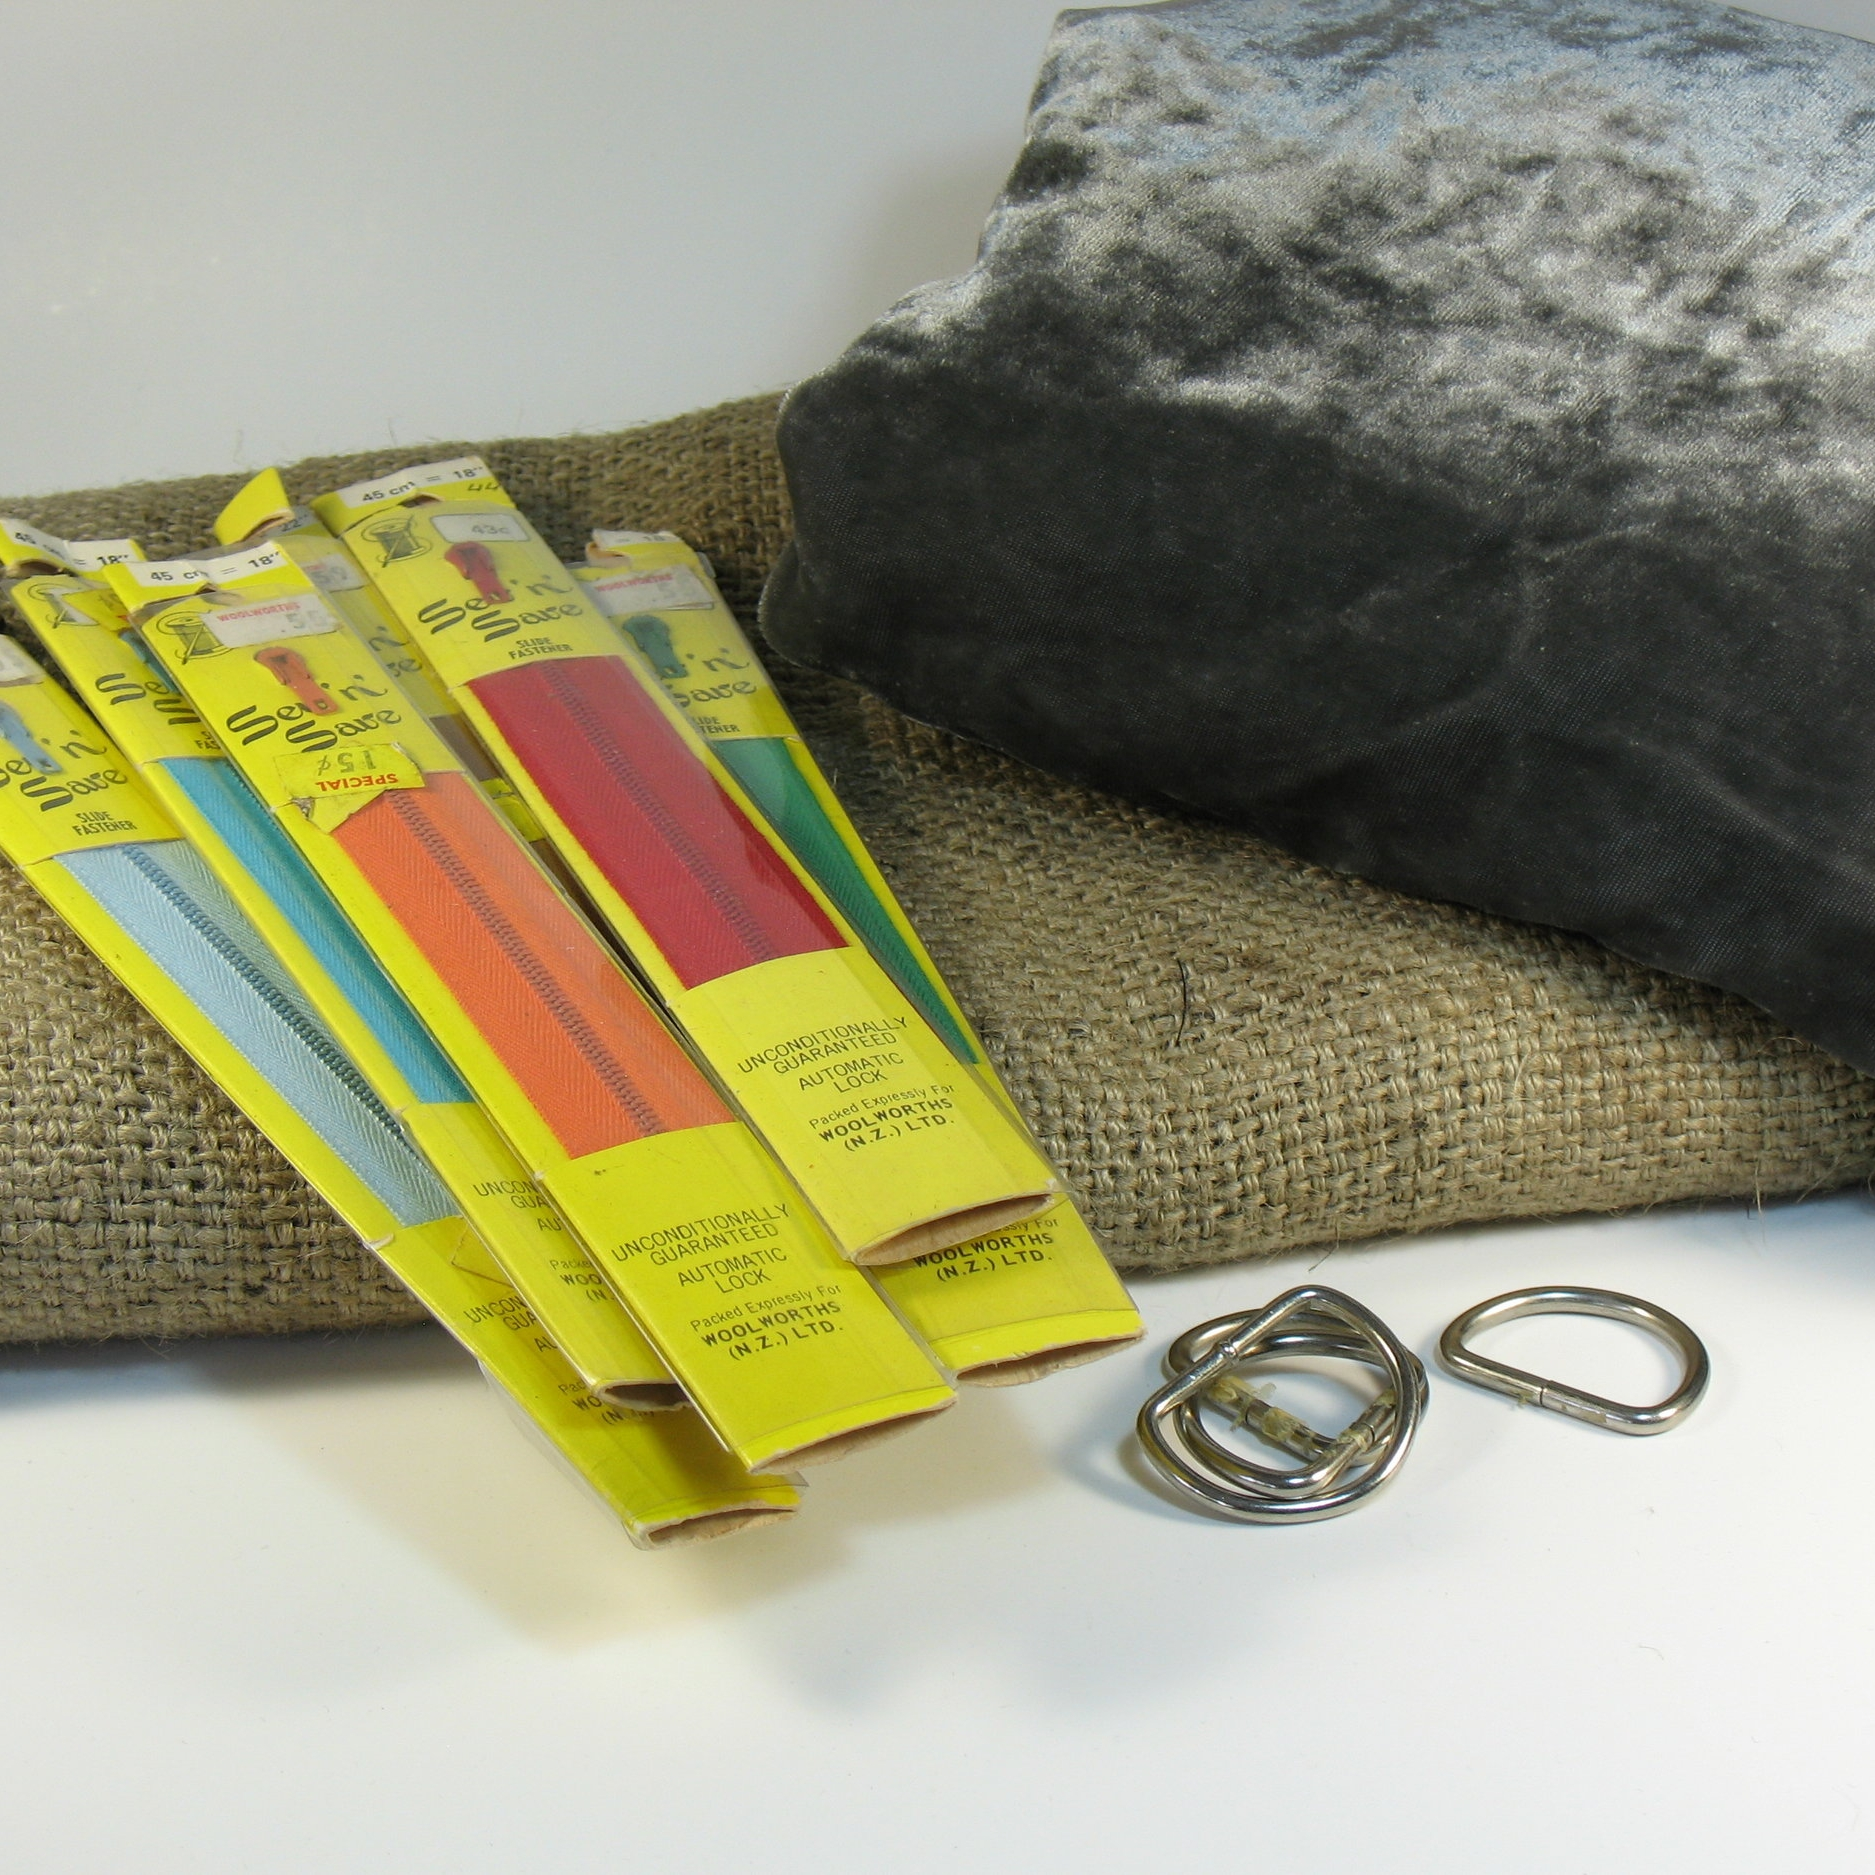 Saving vintage components and up-cycling materials and hardware to save it from landfill and reduce fashion industry waste